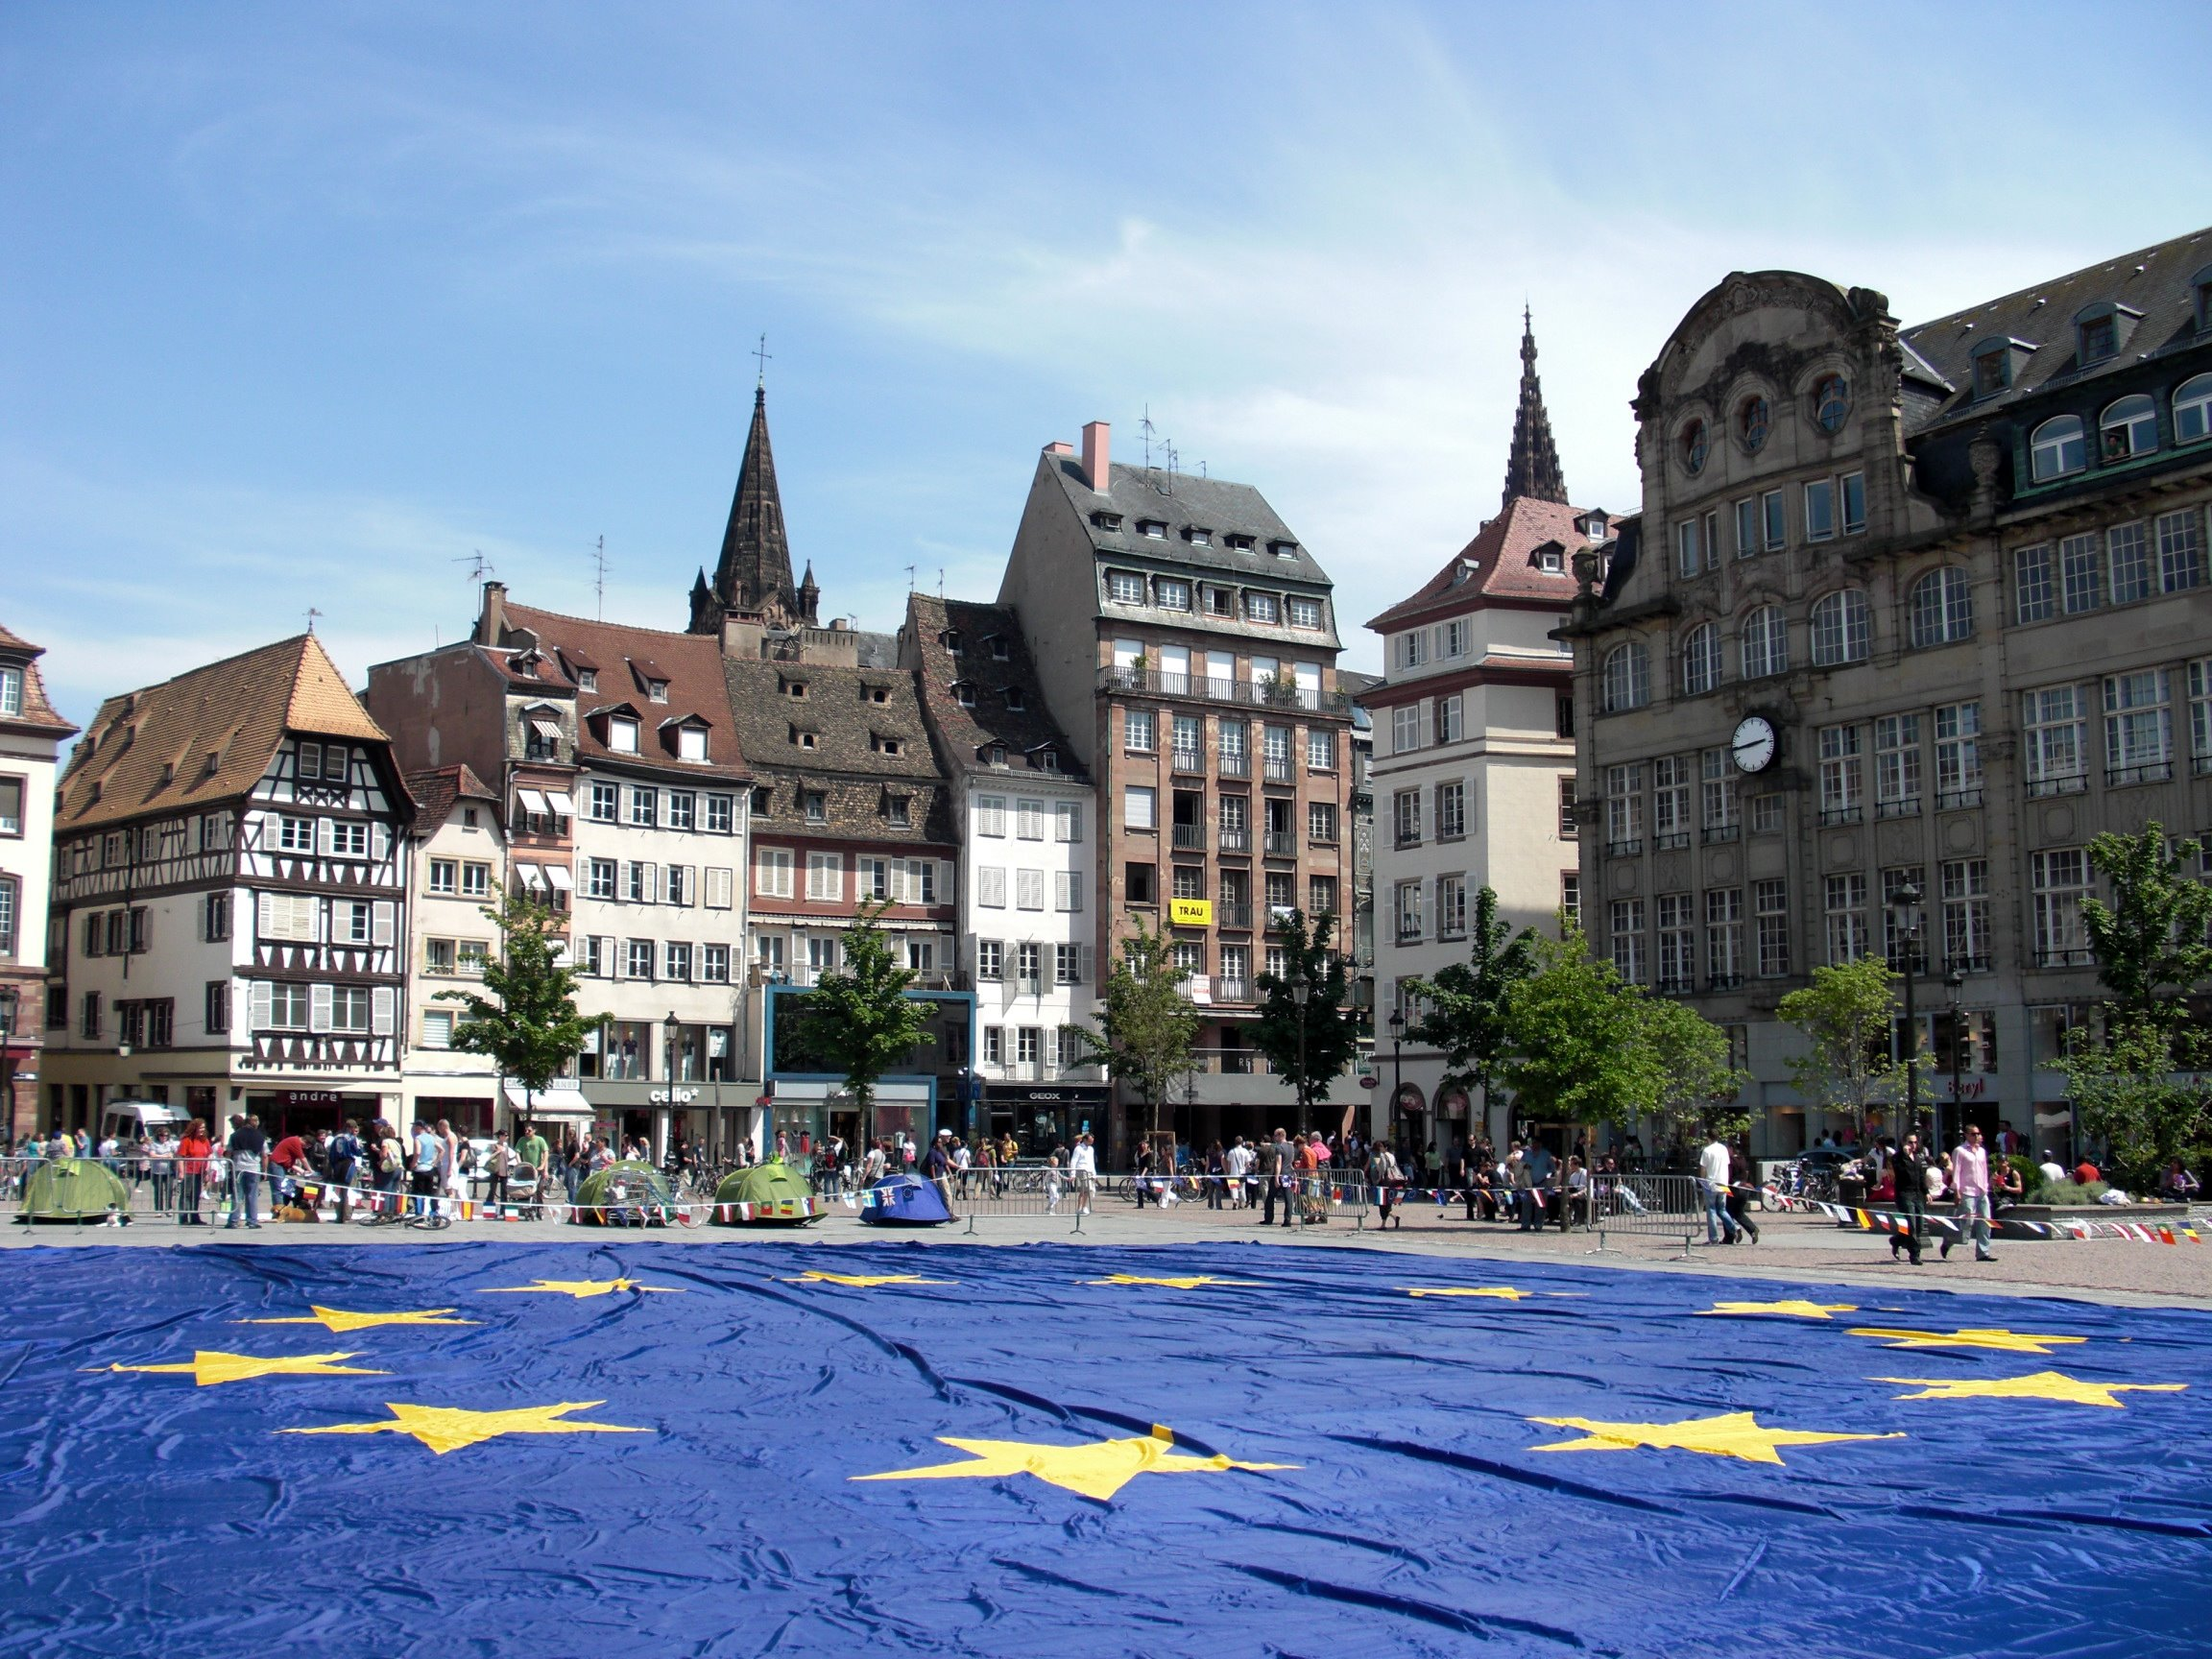 Big European flag at Strasbourg (France) to celebrate the Europe Day